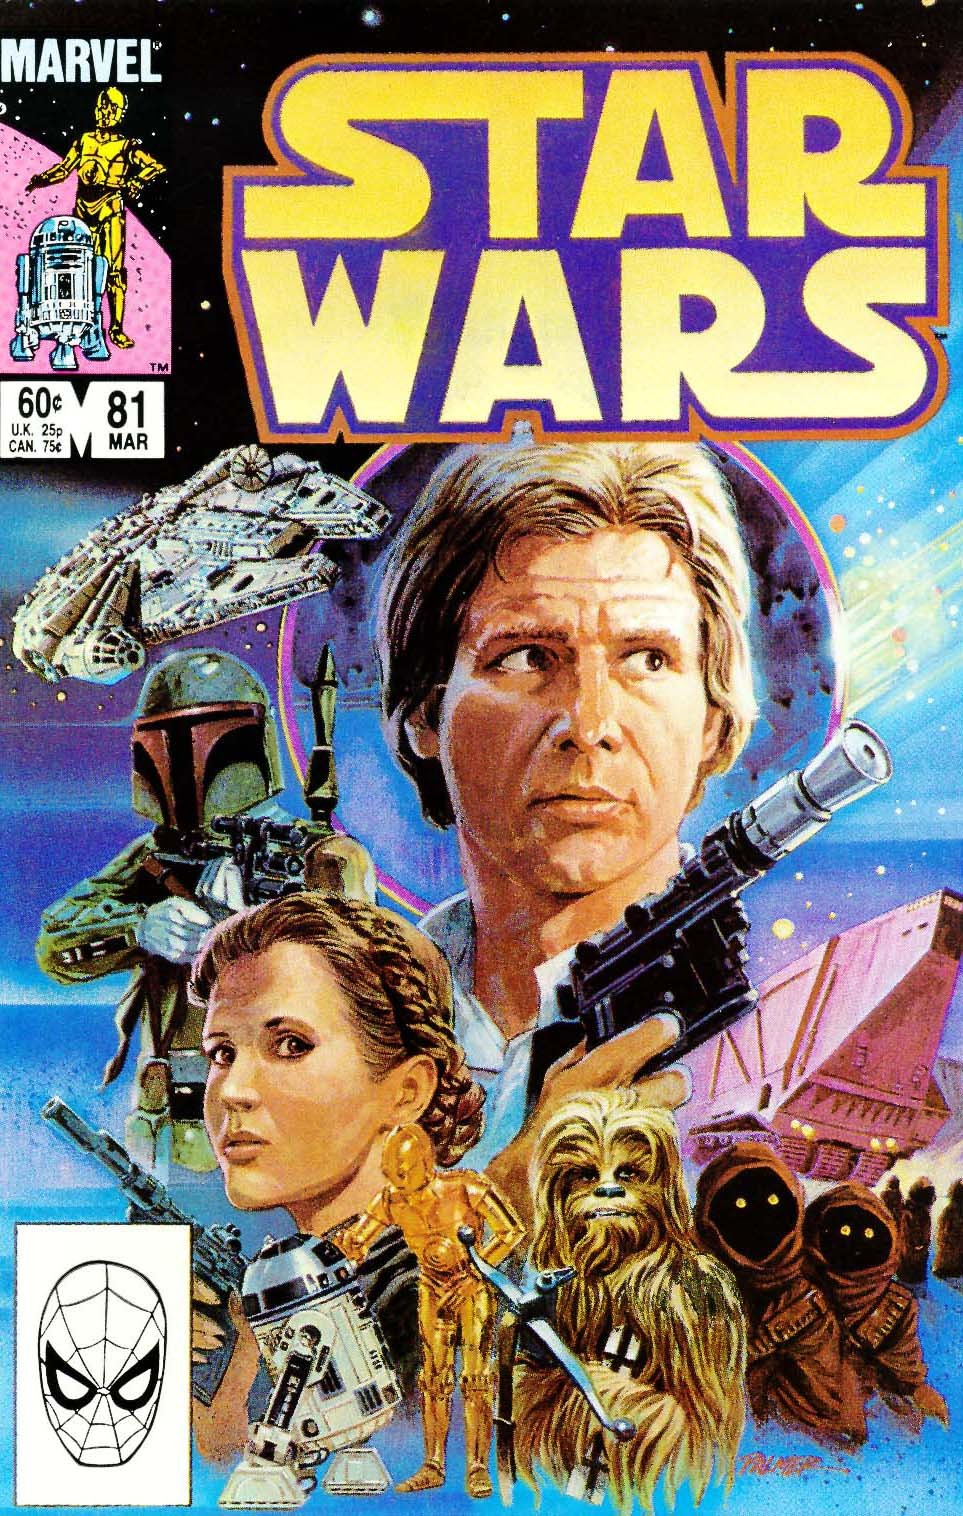 comicbookcovers:  Star Wars #81, March 1984, cover by Tom Palmer